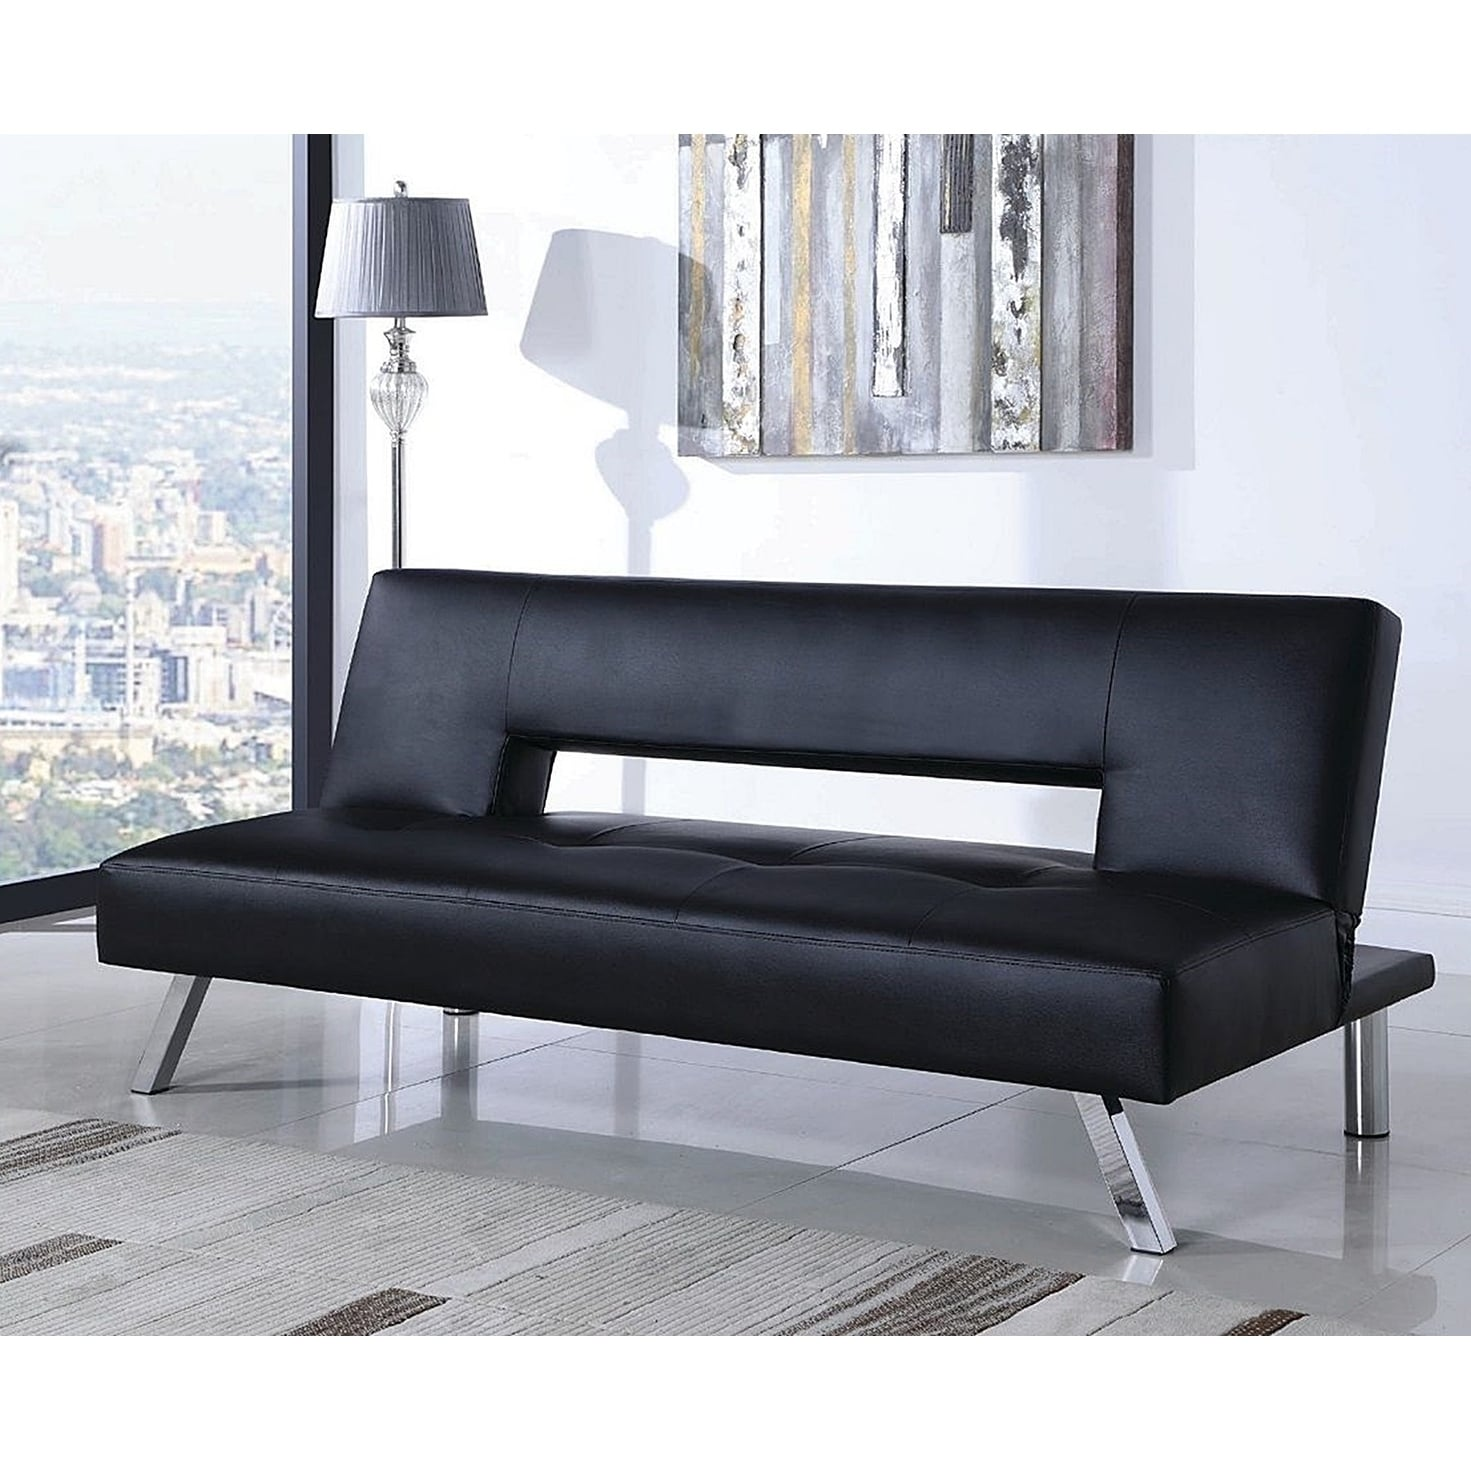 Alten Black Leather Upholstered Tufted Sofa Bed with Chrome Legs